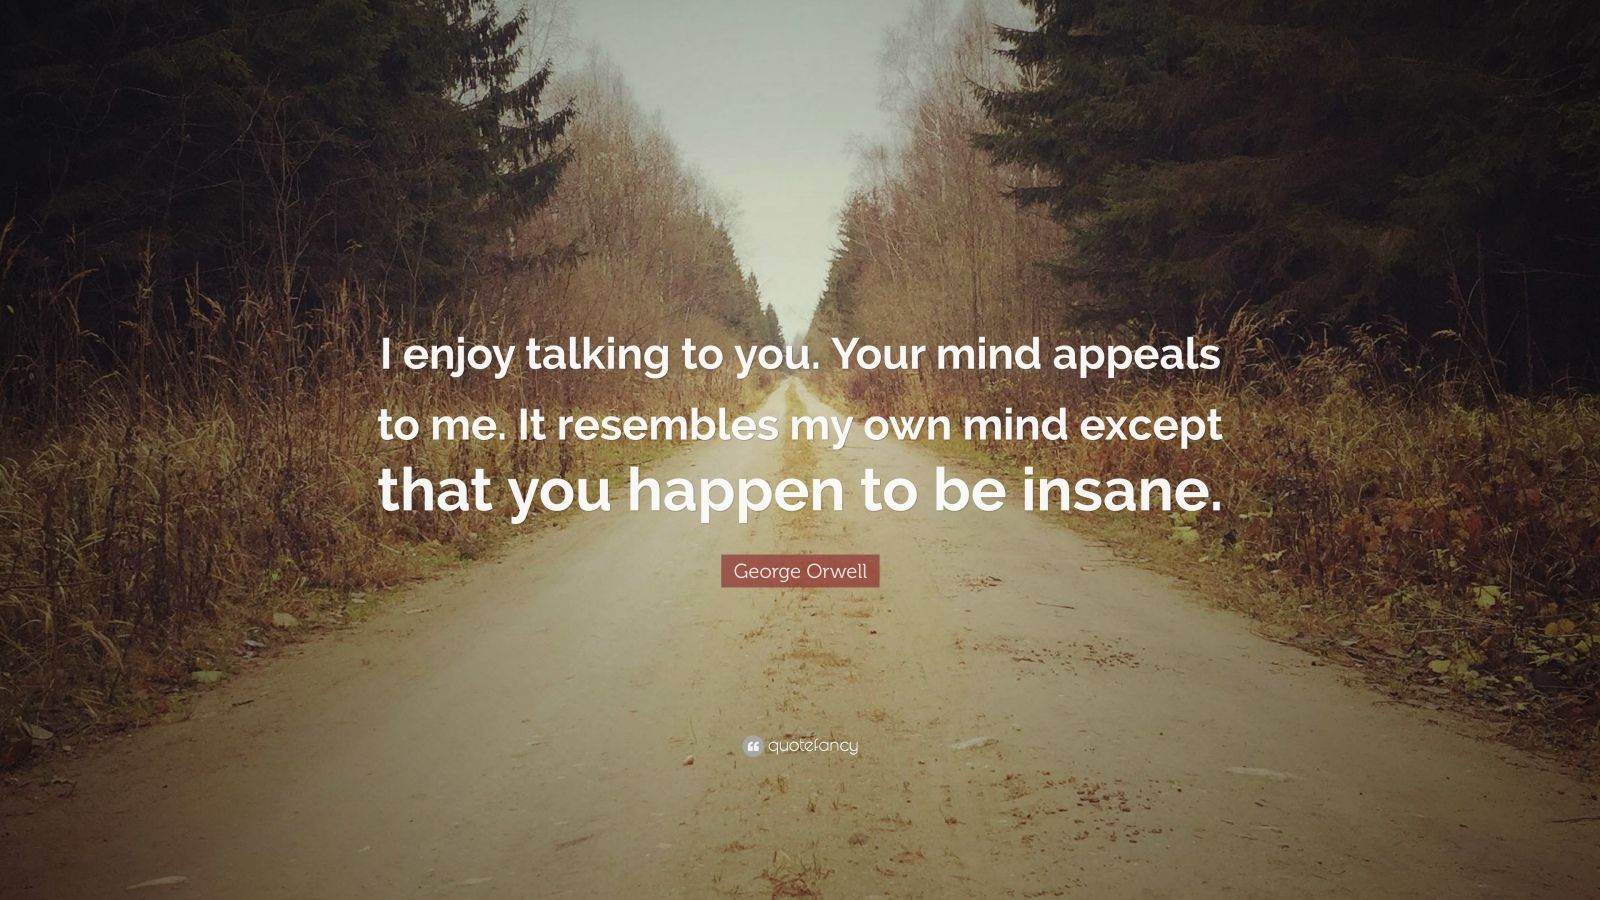 """George Orwell Quote: """"I enjoy talking to you. Your mind appeals to me. It resembles my own mind except that you happen to be insane."""""""